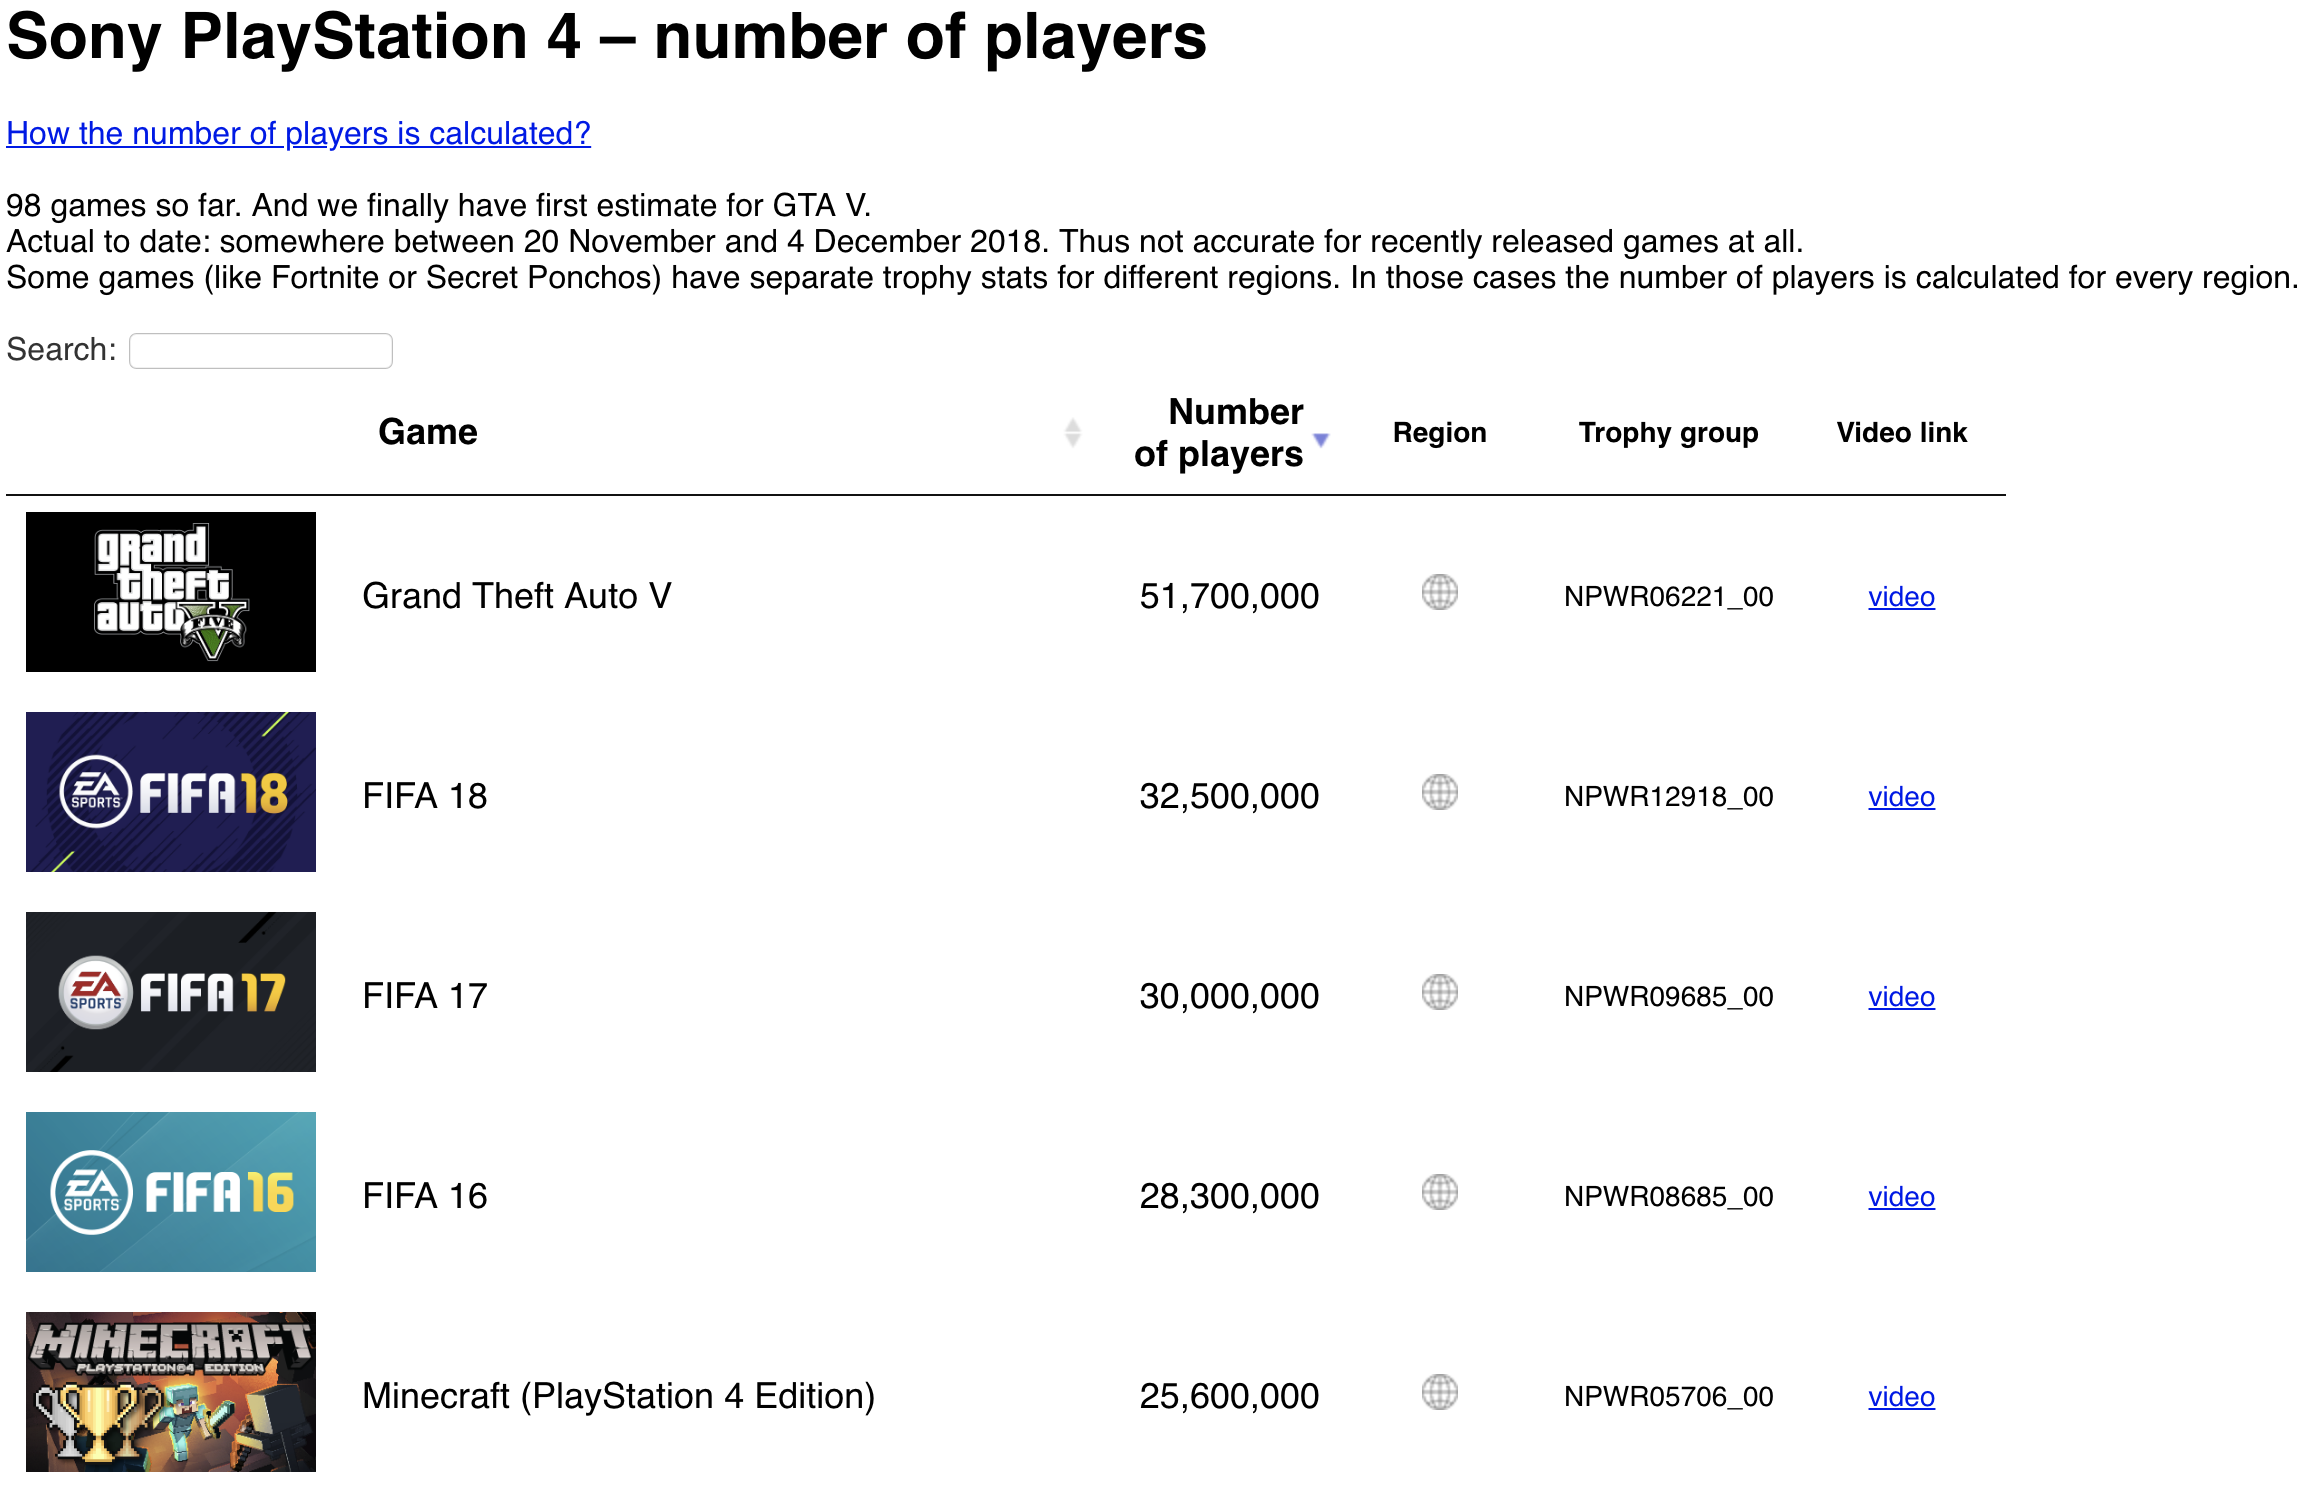 Sony inadvertently leaks player counts for PS4 titles | Ars Technica